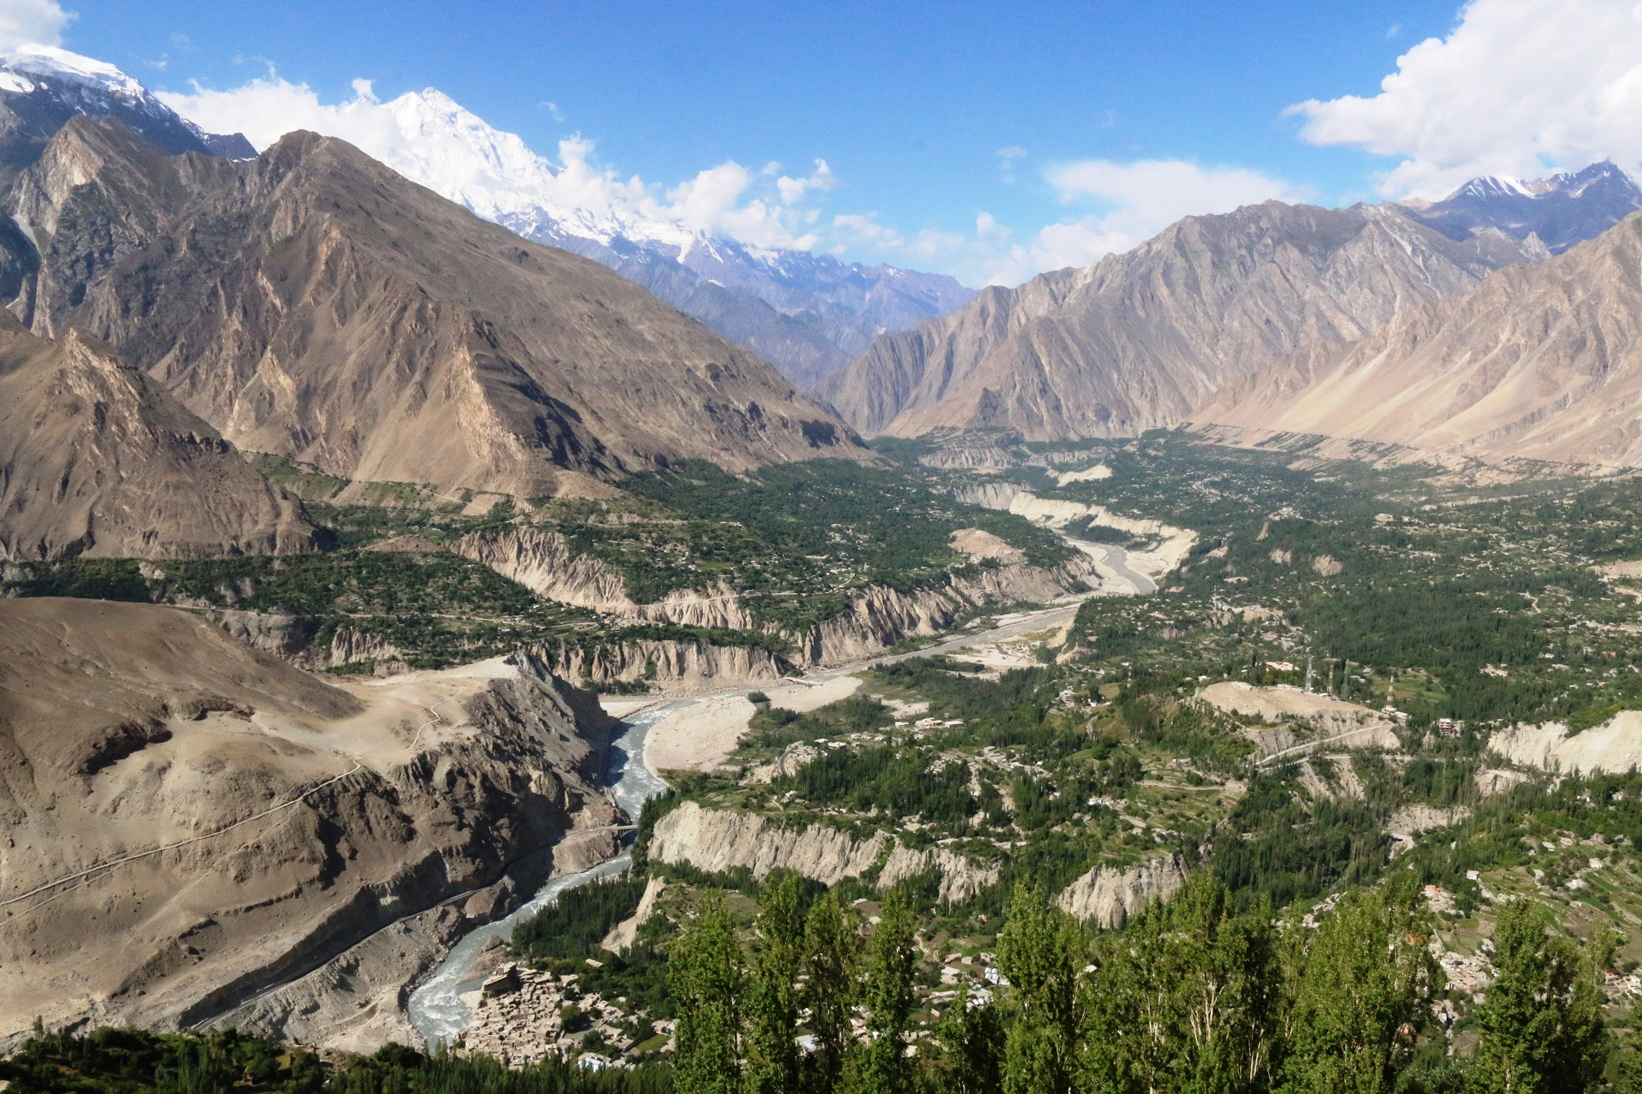 pakistan, Khunjerab to lahore, landscape (mohomad) 03.JPG